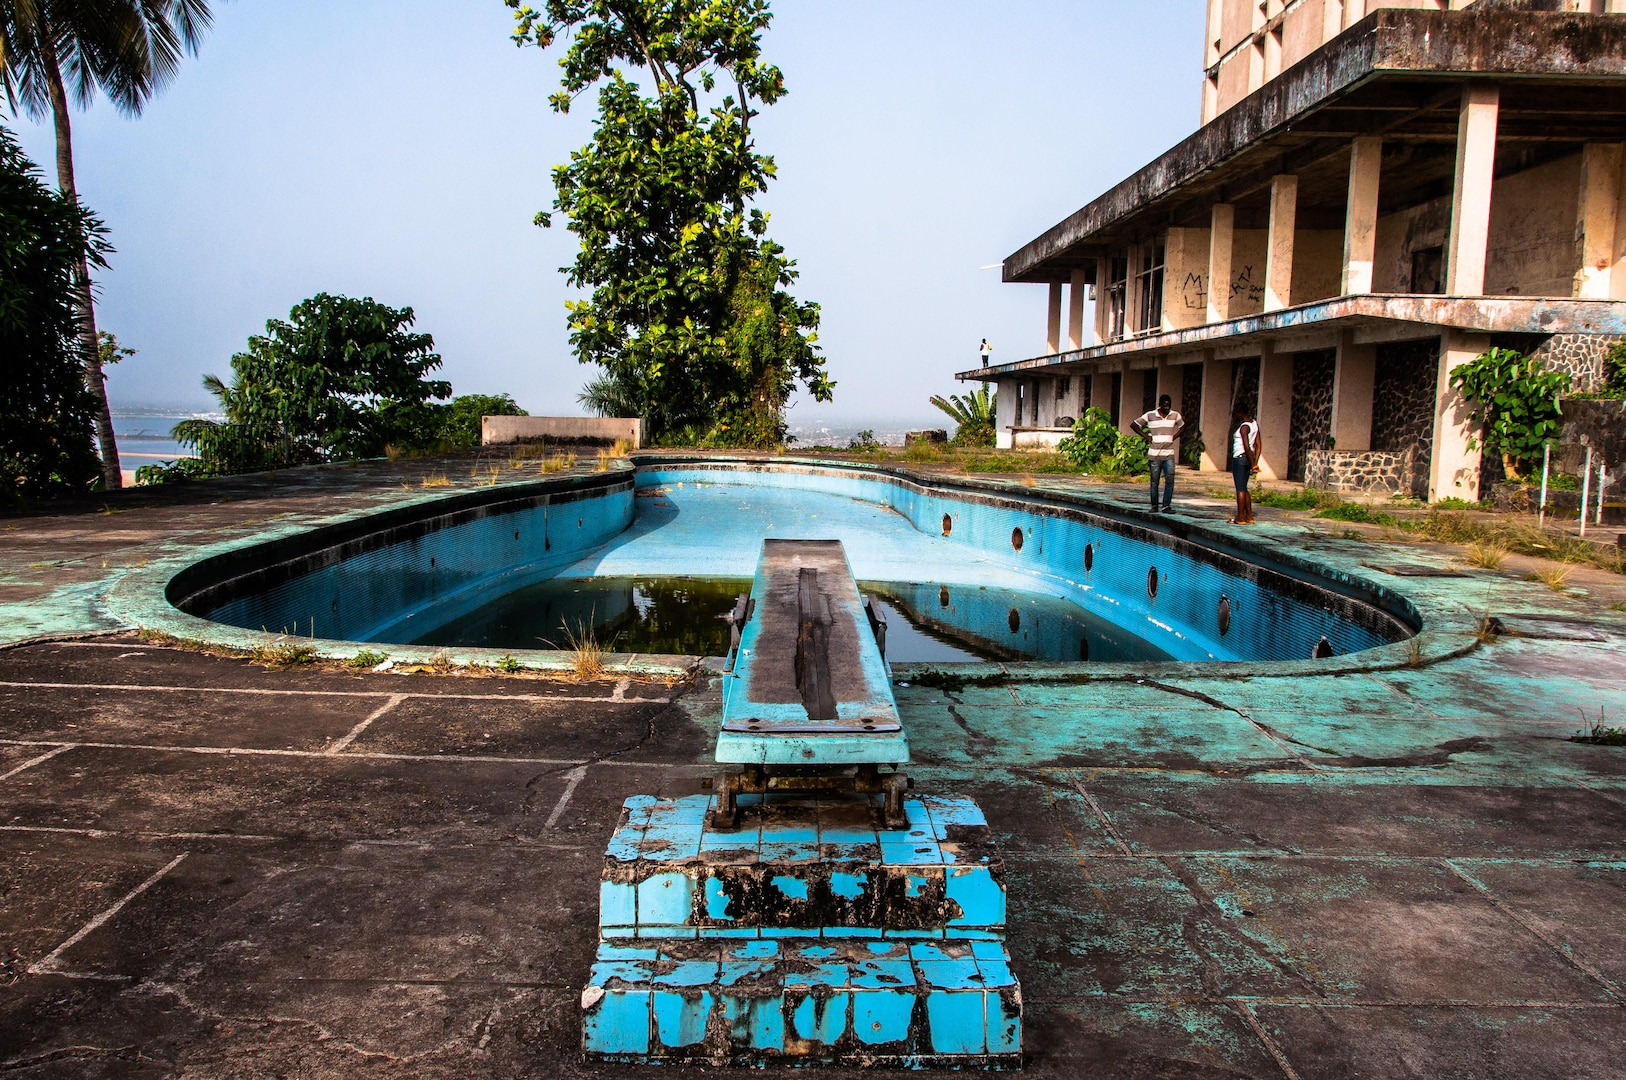 """The swimming pool area of the former Ducor Palace Hotel in Monrovia, Liberia.  The Ducor Palace Hotel in Monrovia was the first international-class hotel constructed in Liberia, and was for many years one of the few five-star hotels in all of Africa. It had three hundred rooms, a pool, tennis courts, and a French restaurant and was popular with tourists and businesspeople from Africa and around the world.  It sits on Ducor Hill and overlooks the Atlantic Ocean and the Saint Paul River.  The hotel closed in 1989, just before the First Liberian Civil War. The building was severely damaged by the violence of the war and the looting that occurred afterwards. During and after the war, displaced residents of many of Monrovia's slums began to occupy the hotel's empty rooms.  In 2007, the Liberian Ministry of Justice began to evict the Ducor Hotel's residents and in 2008, the Government of Liberia signed a lease agreement with the Government of Libya, who began clearing the property of debris in 2010 in preparation for a bidding process to be completed by June 2010. The project was delayed several times before finally being abandoned upon Liberia's severing of diplomatic relations with the Gaddafi government following the outbreak of the 2011 Libyan civil war.  The building is open today and visitors can walk throughout the grounds and building (often after paying a """"security fee"""" to have one of the guards accompany them).  It is a popular place for Monrovia residents to come and enjoy the panoramic view of the city, especially for special occasions like Christmas, New Years, and Independence Day."""